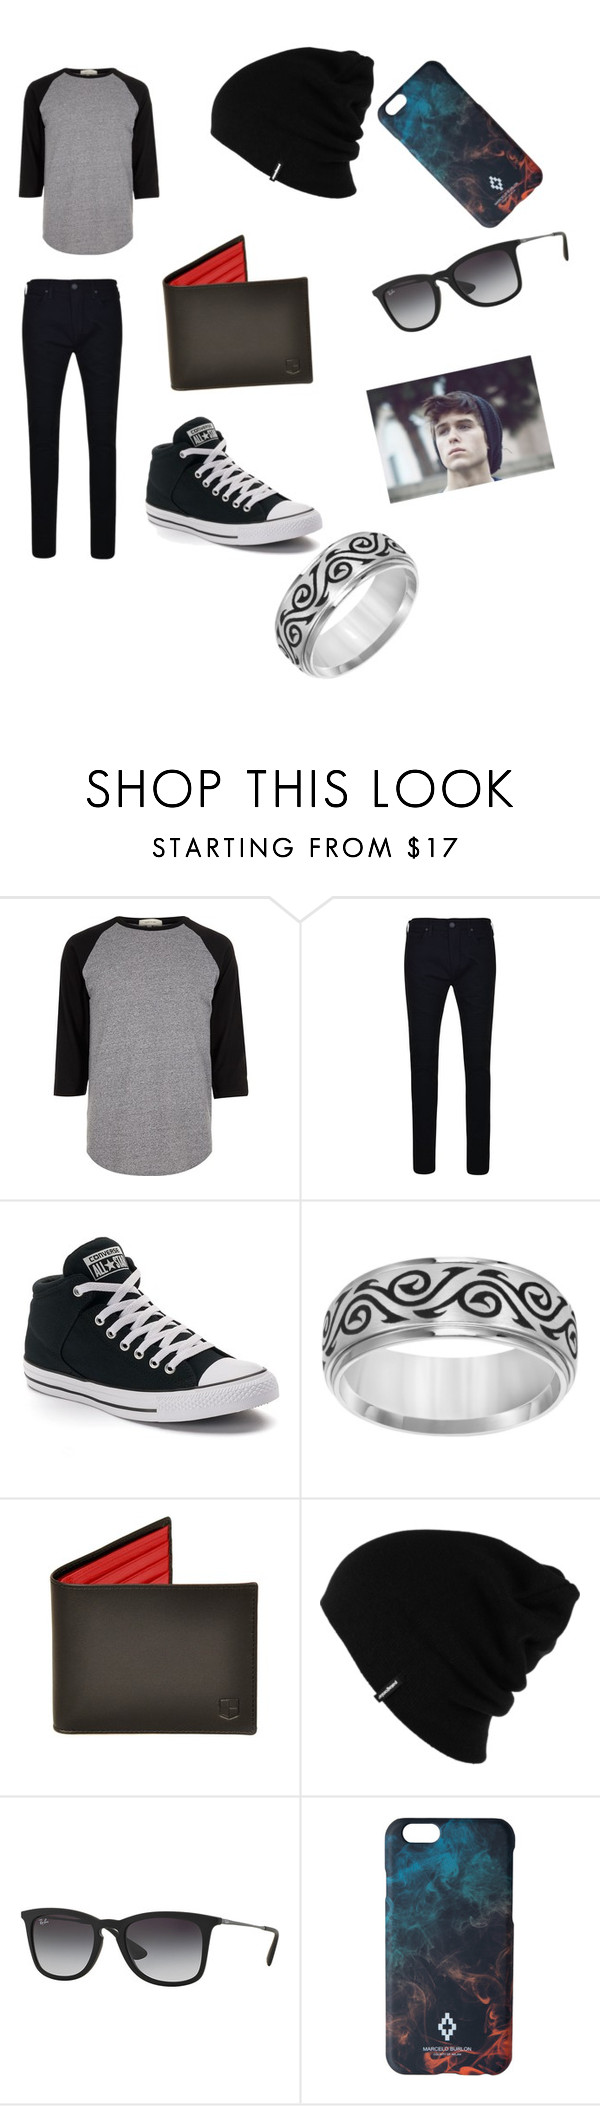 """""""Casual outfit"""" by sassy13styler on Polyvore featuring River Island, True Religion, Converse, Cherish Always, Patagonia, ADAM, Ray-Ban, Marcelo Burlon, men's fashion and menswear"""